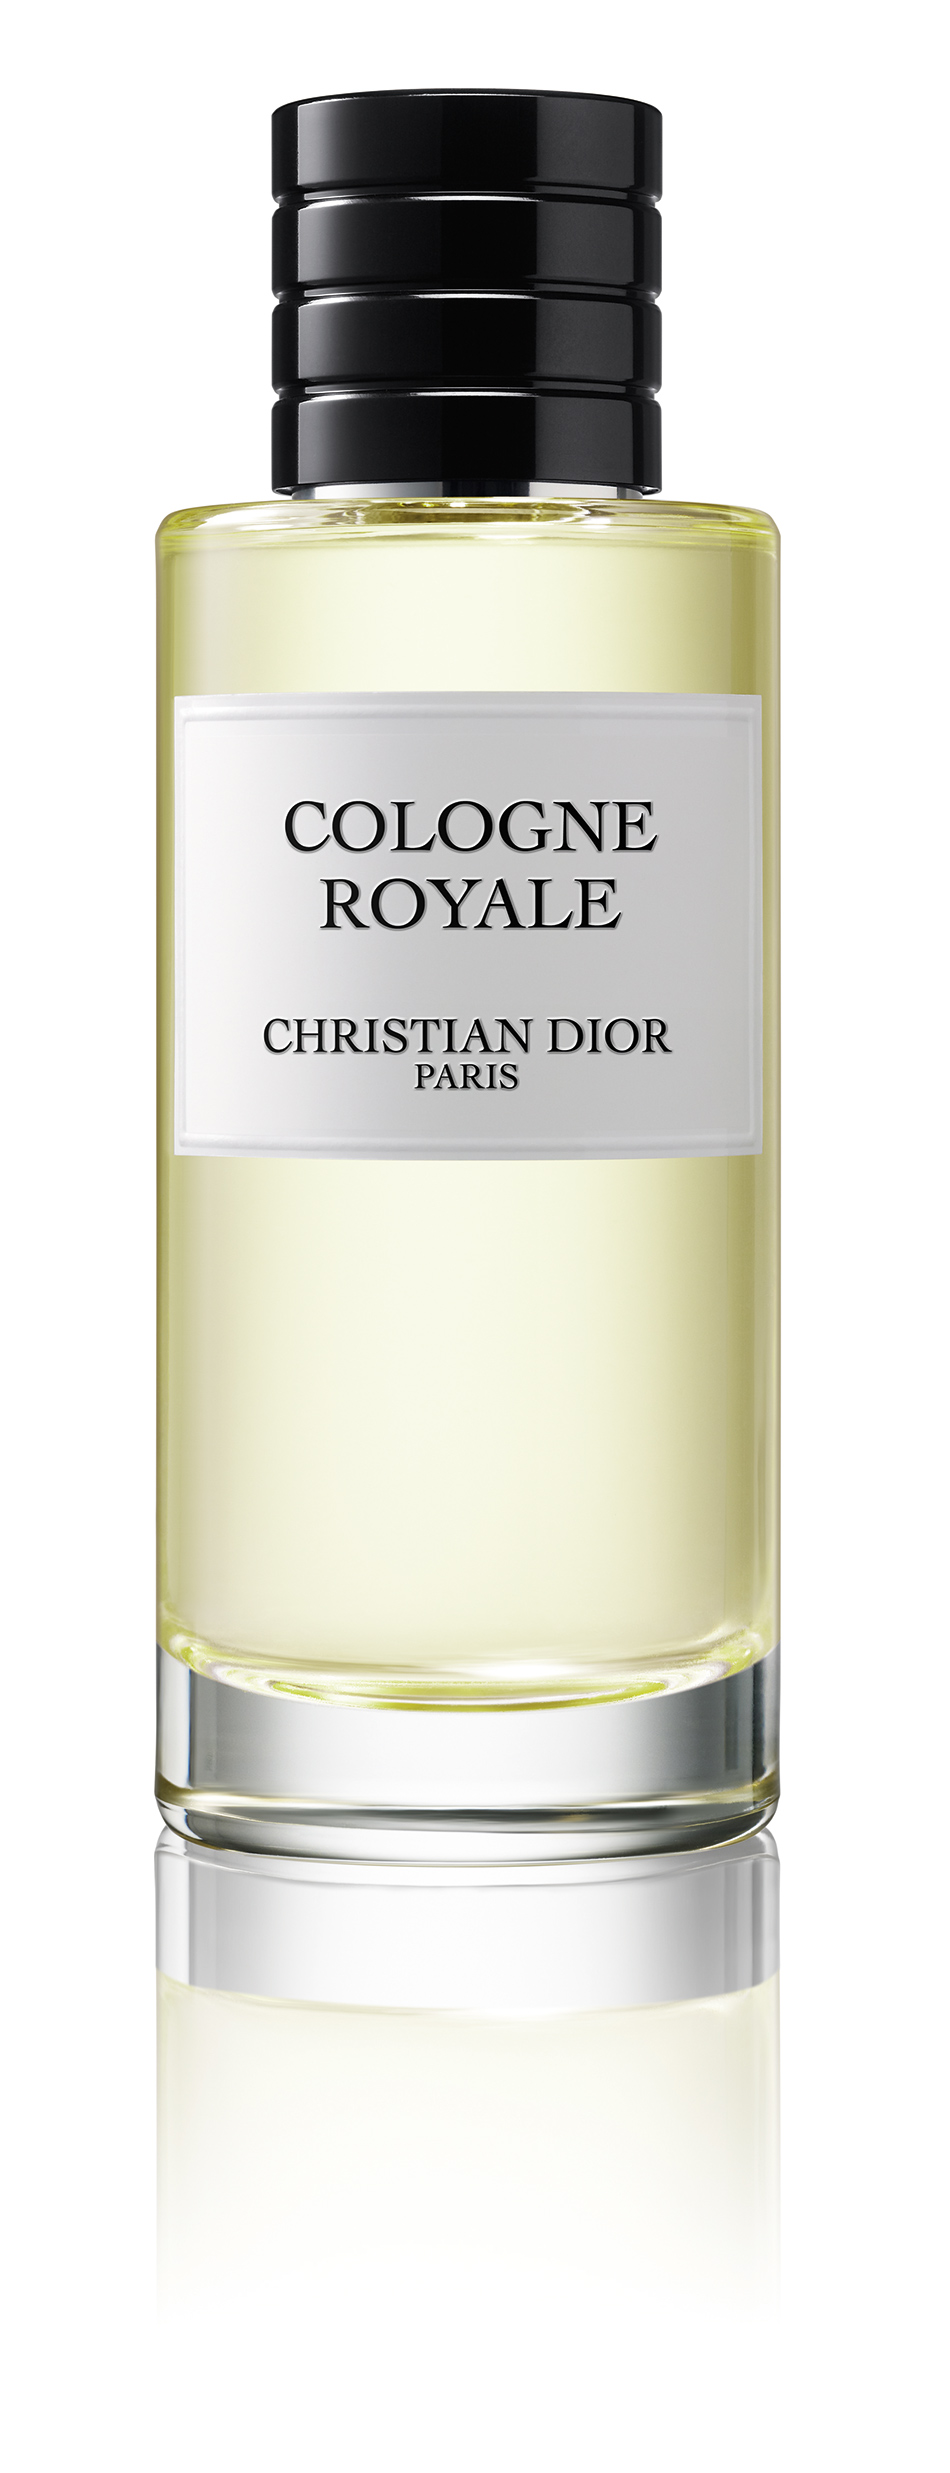 Cologne Royale Christian Dior